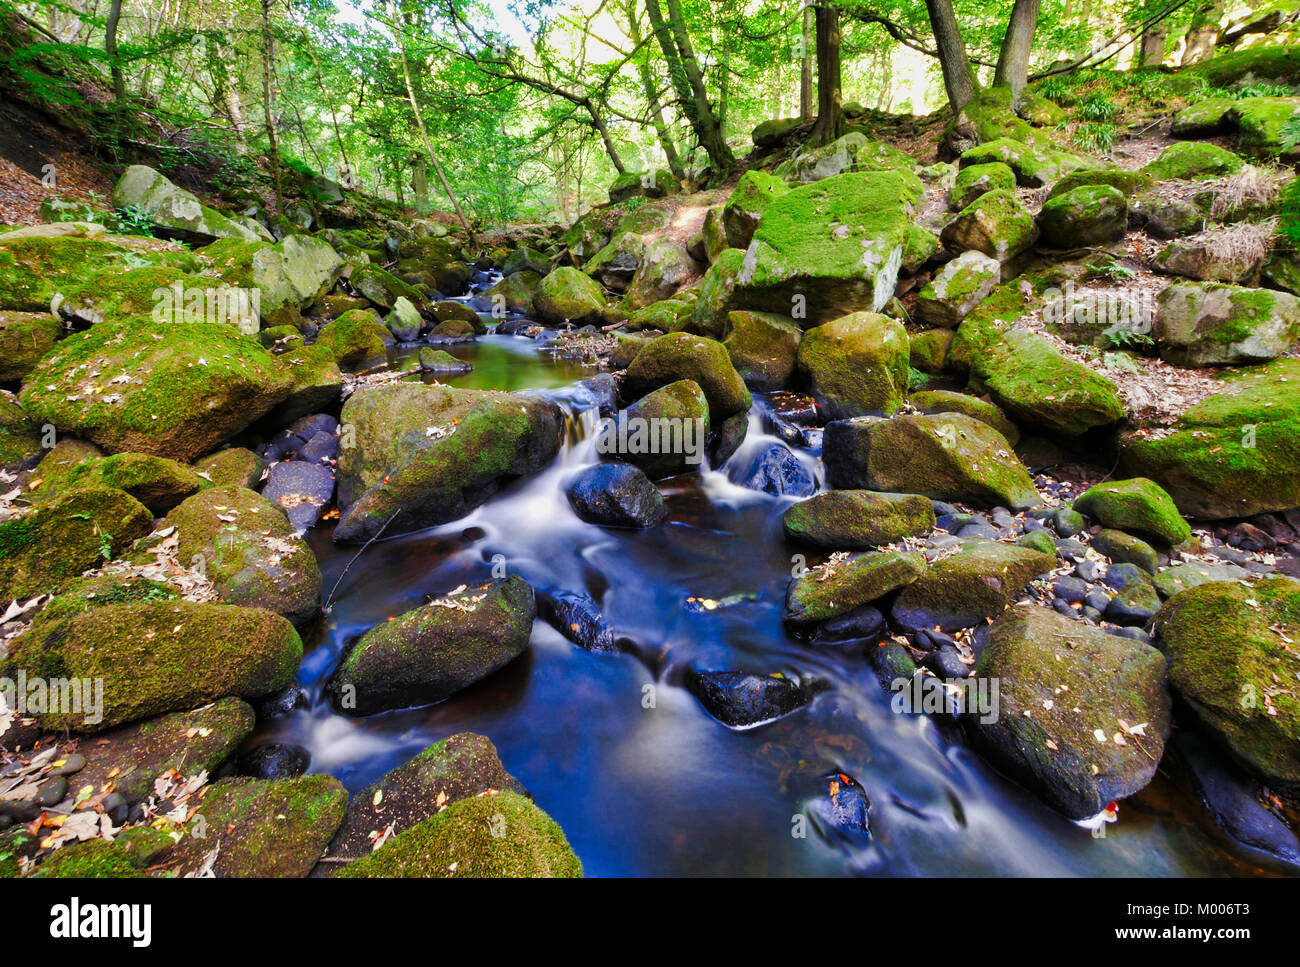 UK Weather: Autumn leaves starting to turn and fall in the stunning scenic Padley Gorge, Grindleford, Peak District - Stock Image